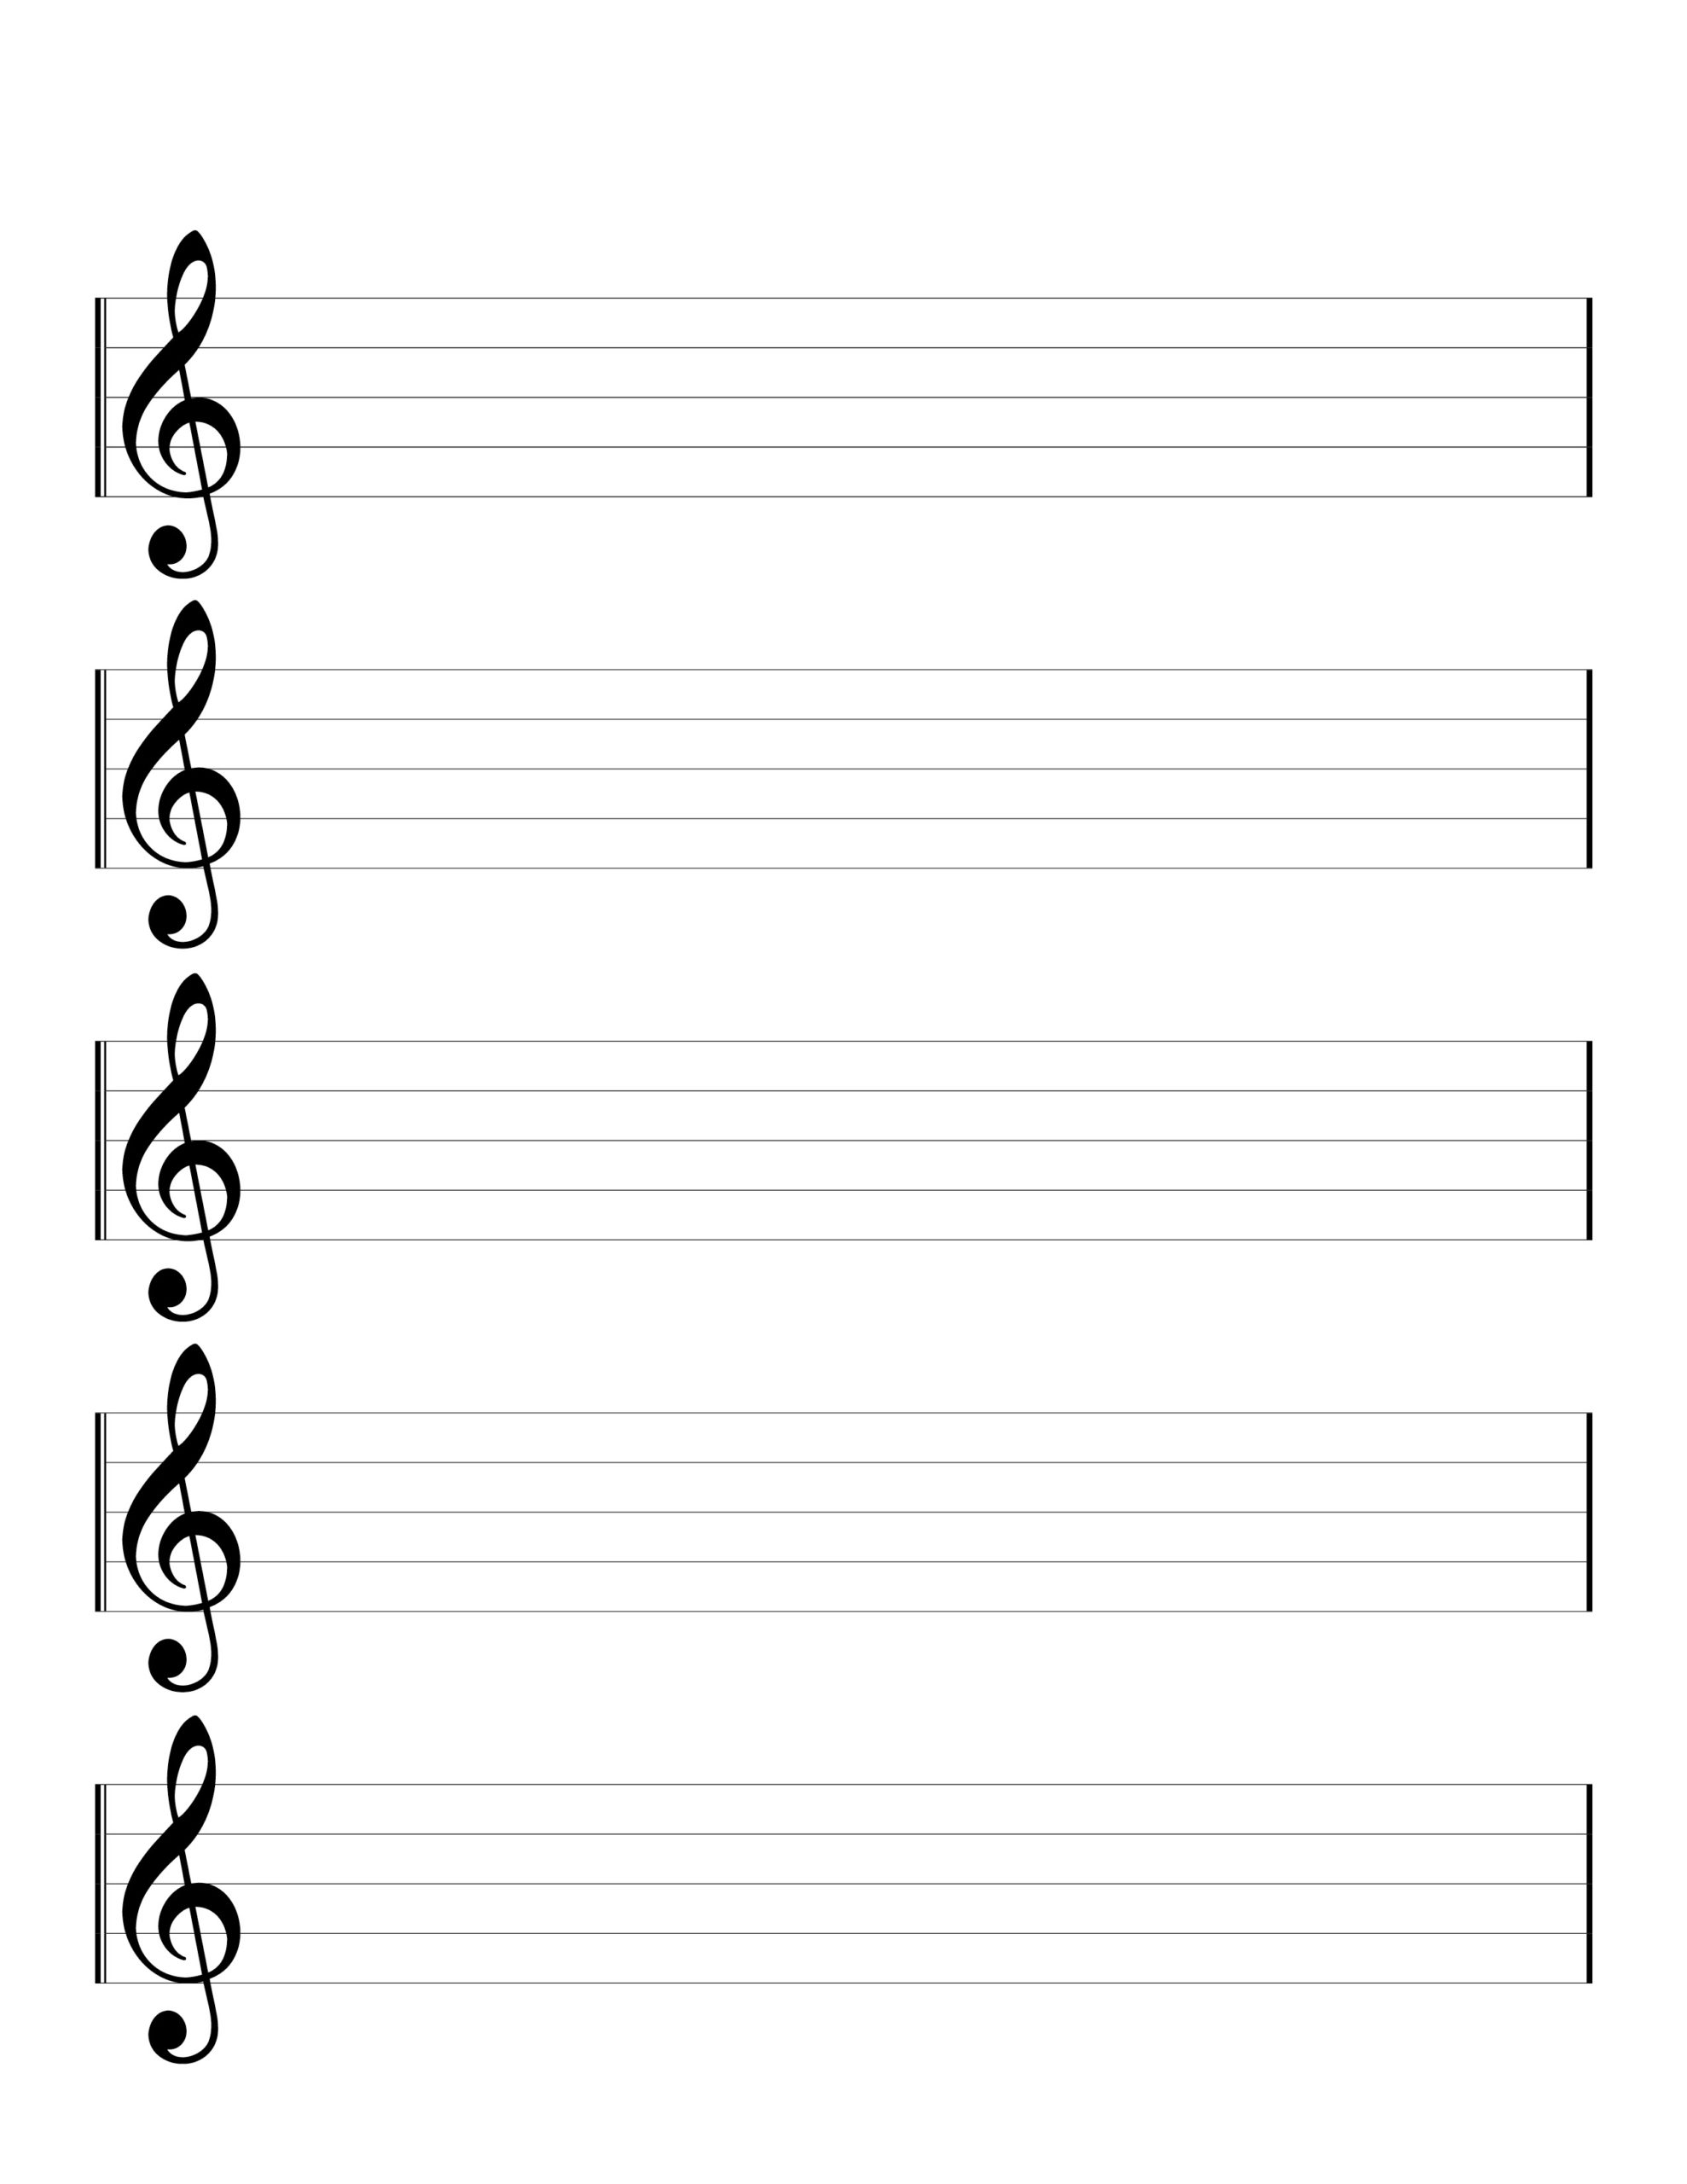 Printable, blank music staff paper so you don't have to ...